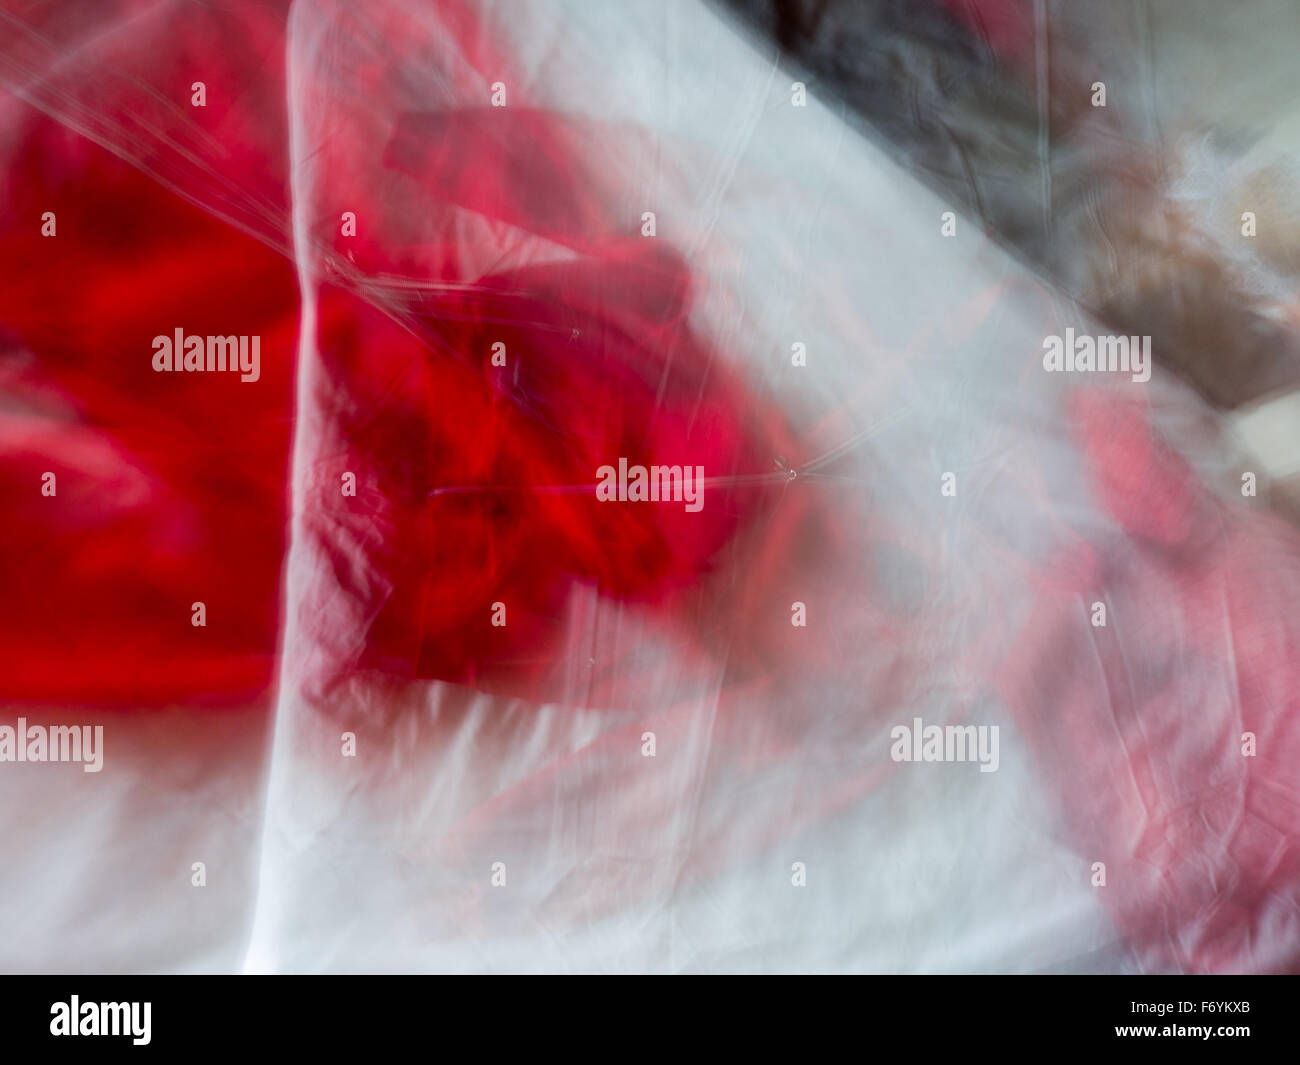 The varicolored blur Abstract picture. - Stock Image